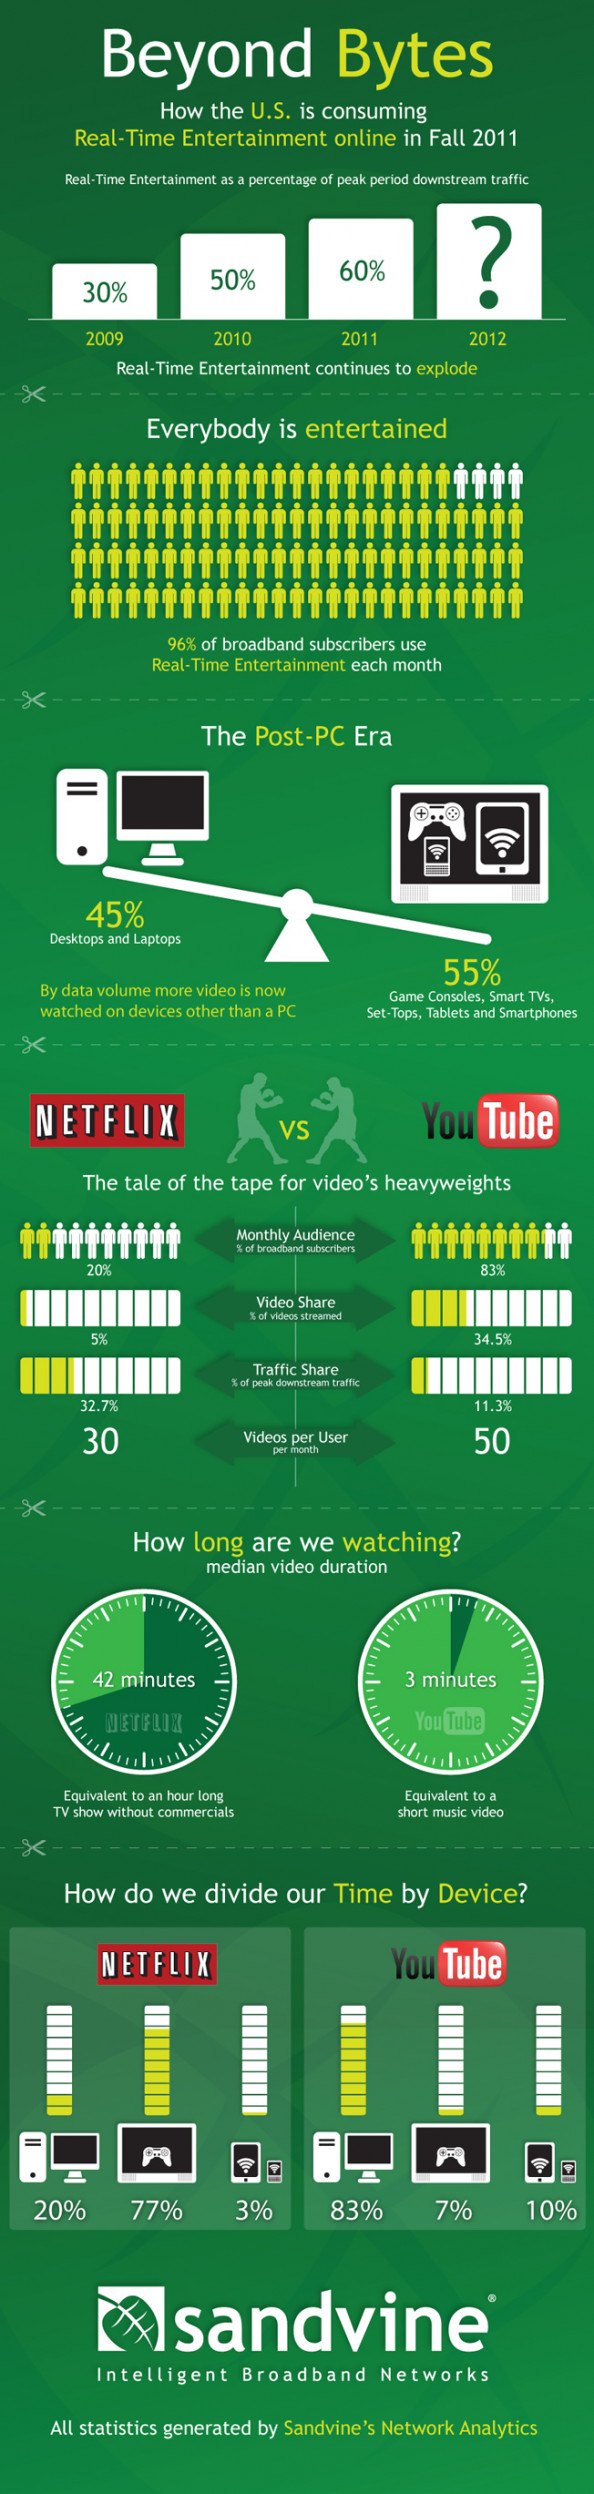 How the U.S. Consumes Real-Time Entertainment Online Infographic